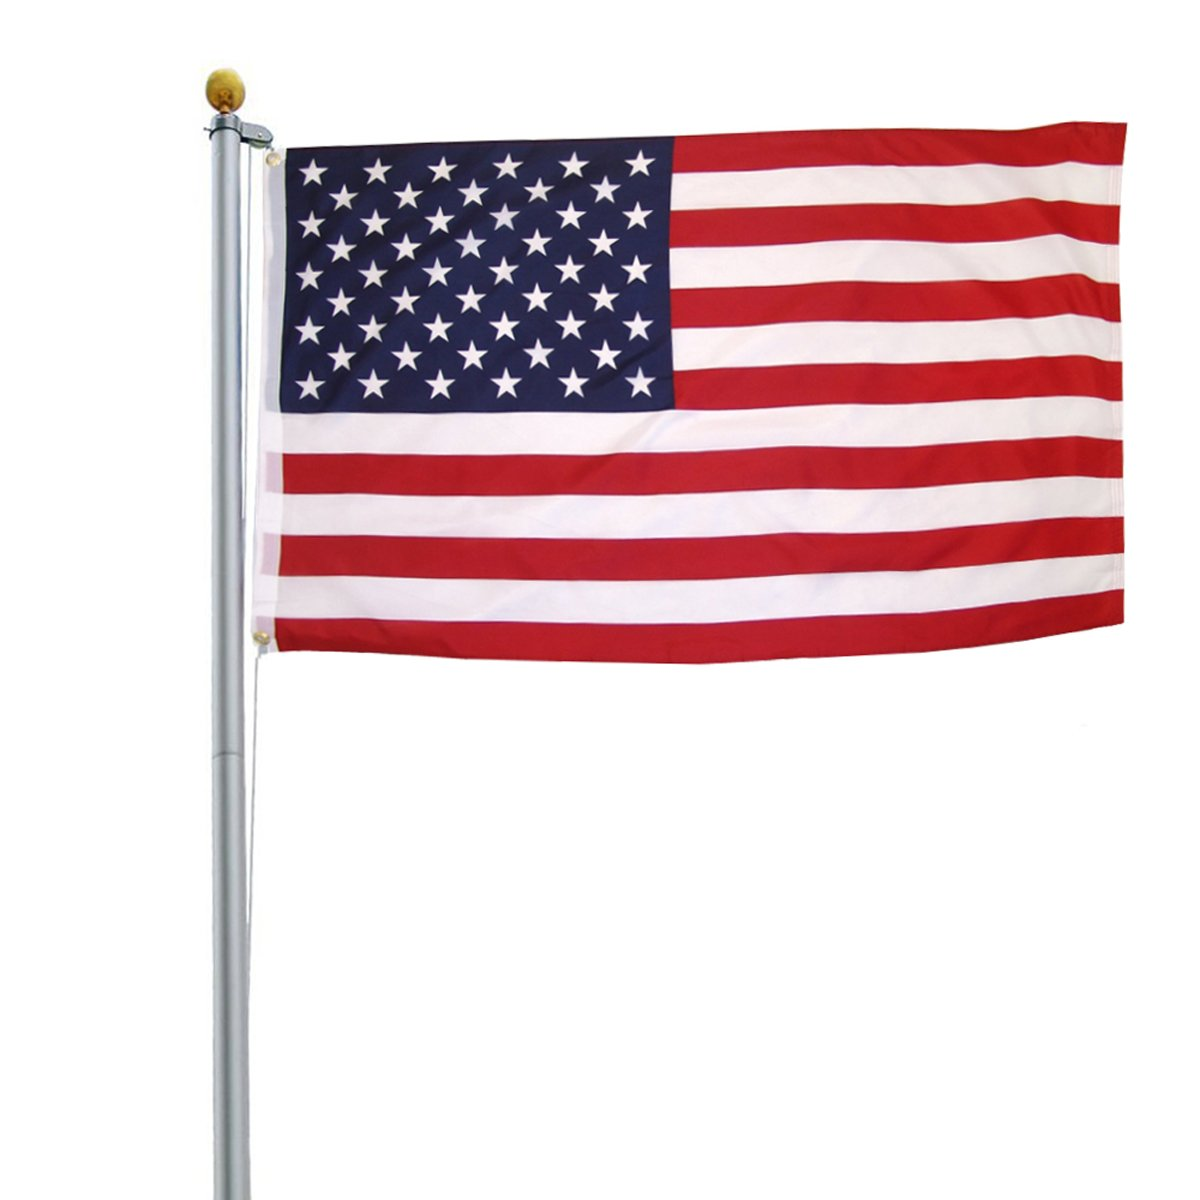 ZENY 25FT Sectional Aluminum Flag Pole Free 3'x5' US Flag & Ball Top Kit Outdoor Garden Flagpole Residential or Commercial Use